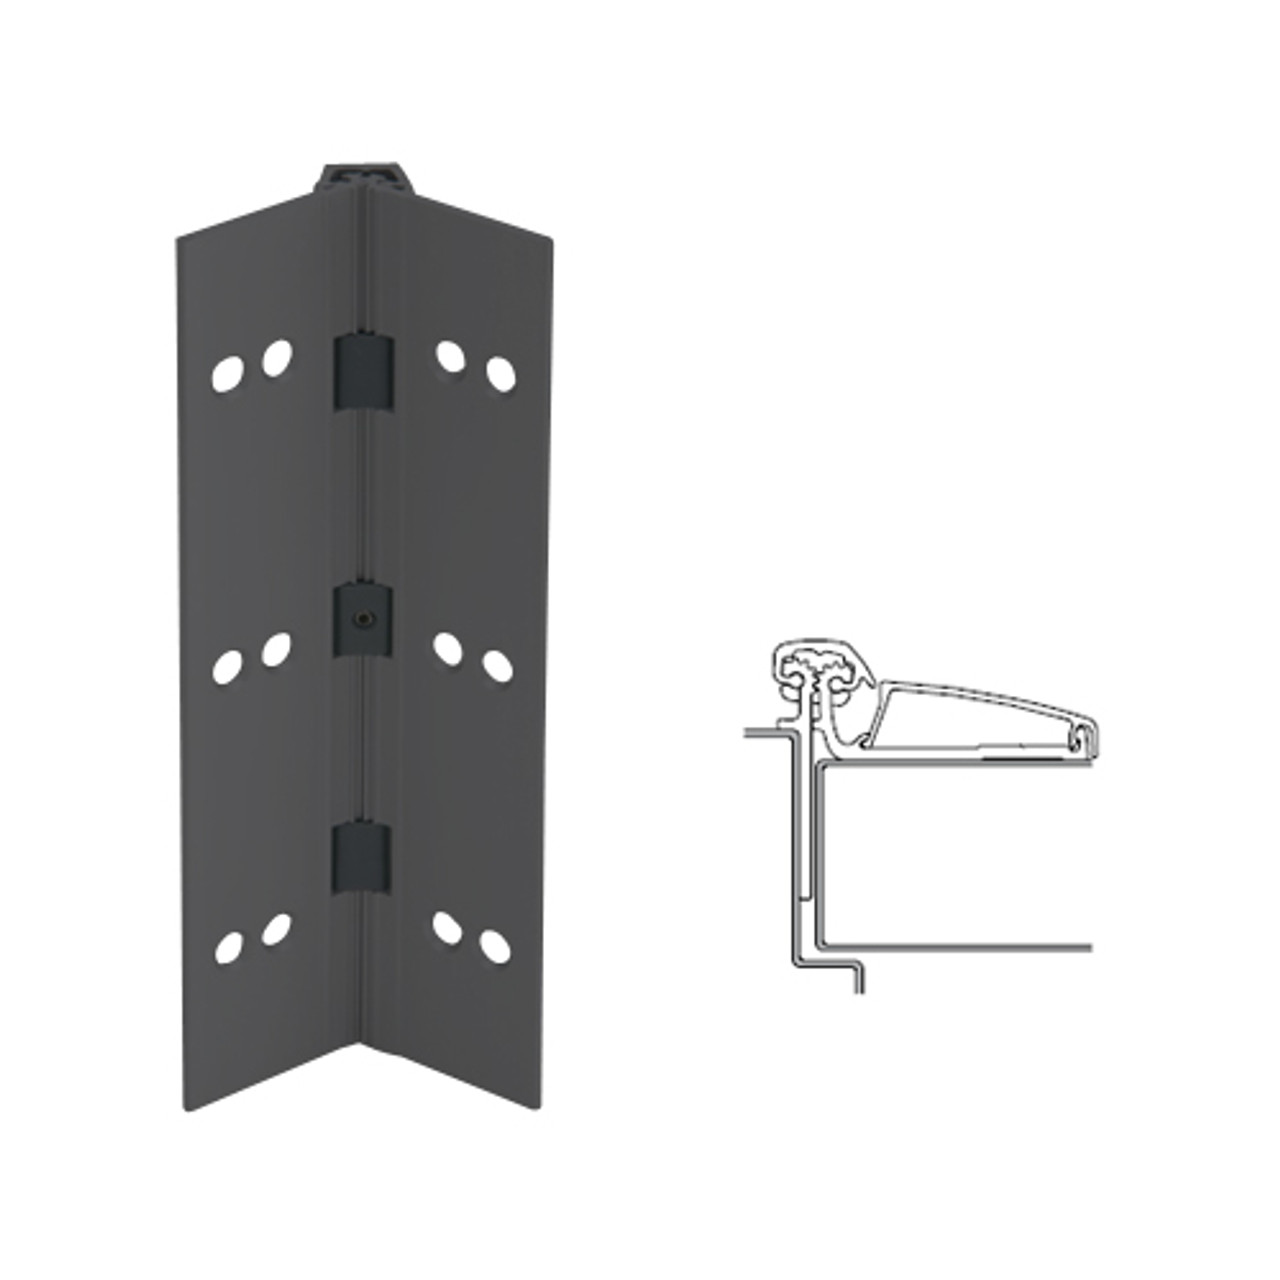 045XY-315AN-83 IVES Adjustable Half Surface Continuous Geared Hinges in Anodized Black